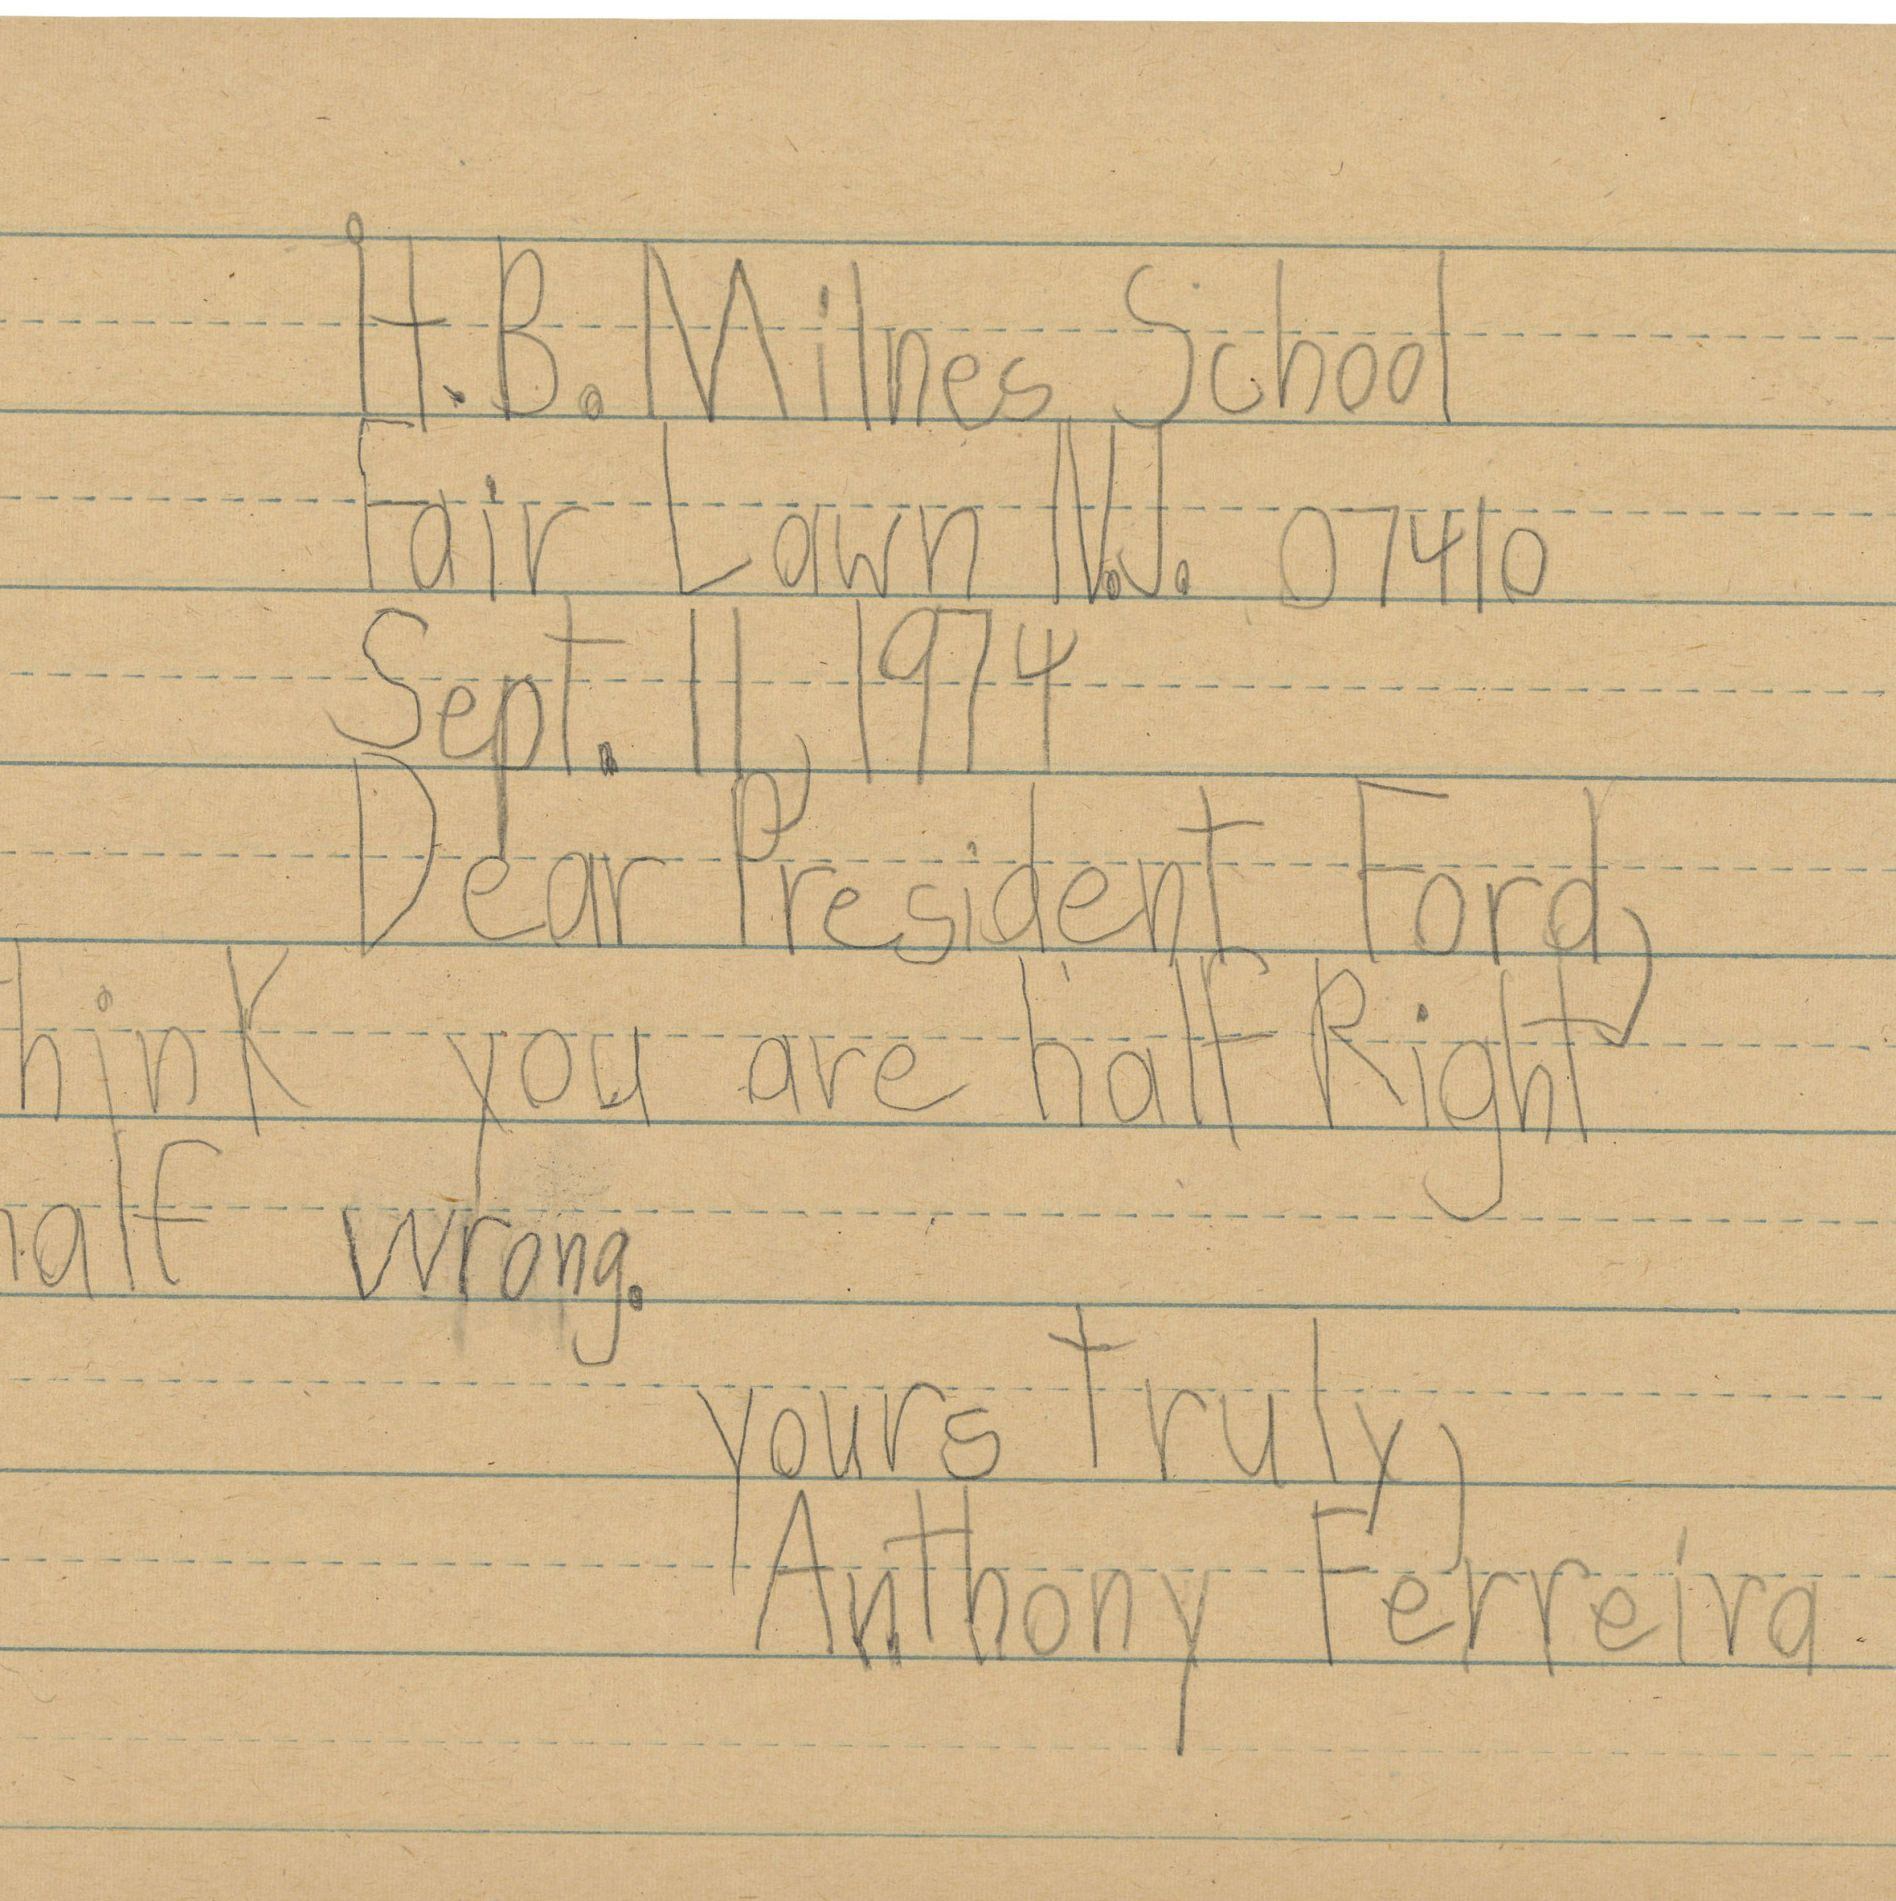 Letter to President Gerald Ford from Anthony Ferreira a Third Grader at Henry B. Milnes School